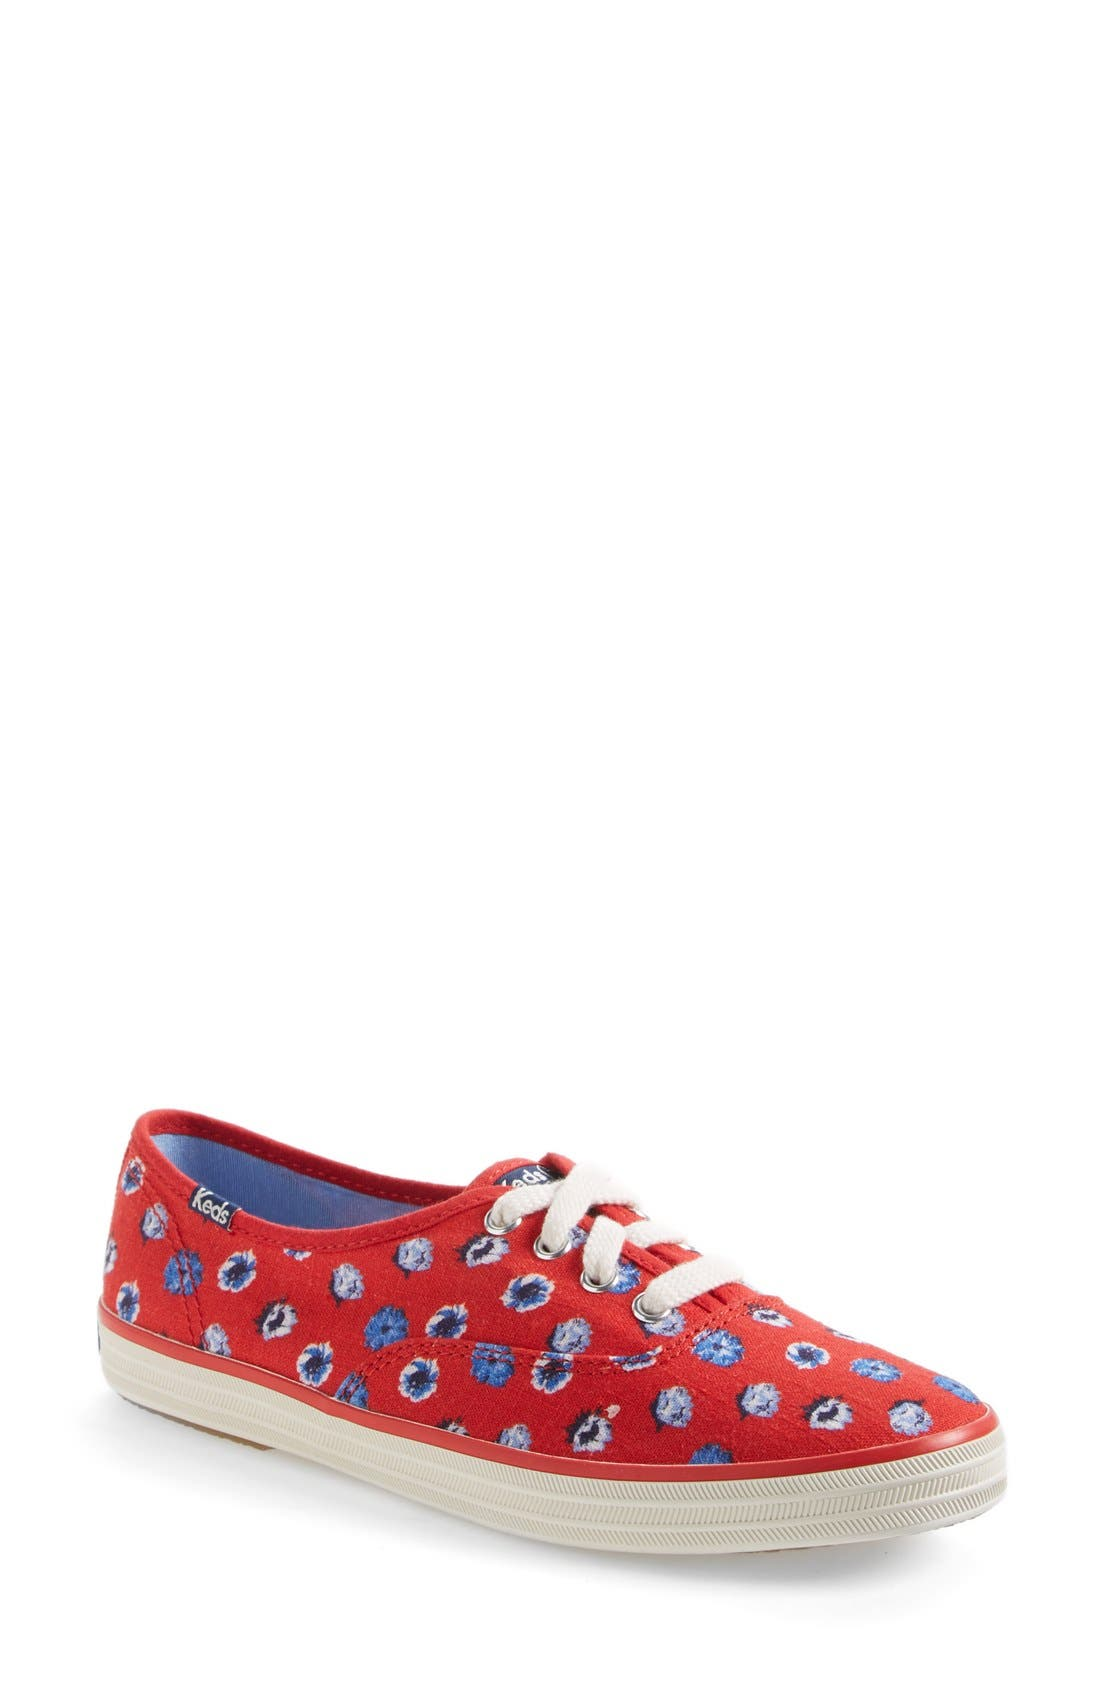 Main Image - Keds® Taylor Swift 'Floral Dot' Sneaker (Women) (Nordstrom Exclusive)